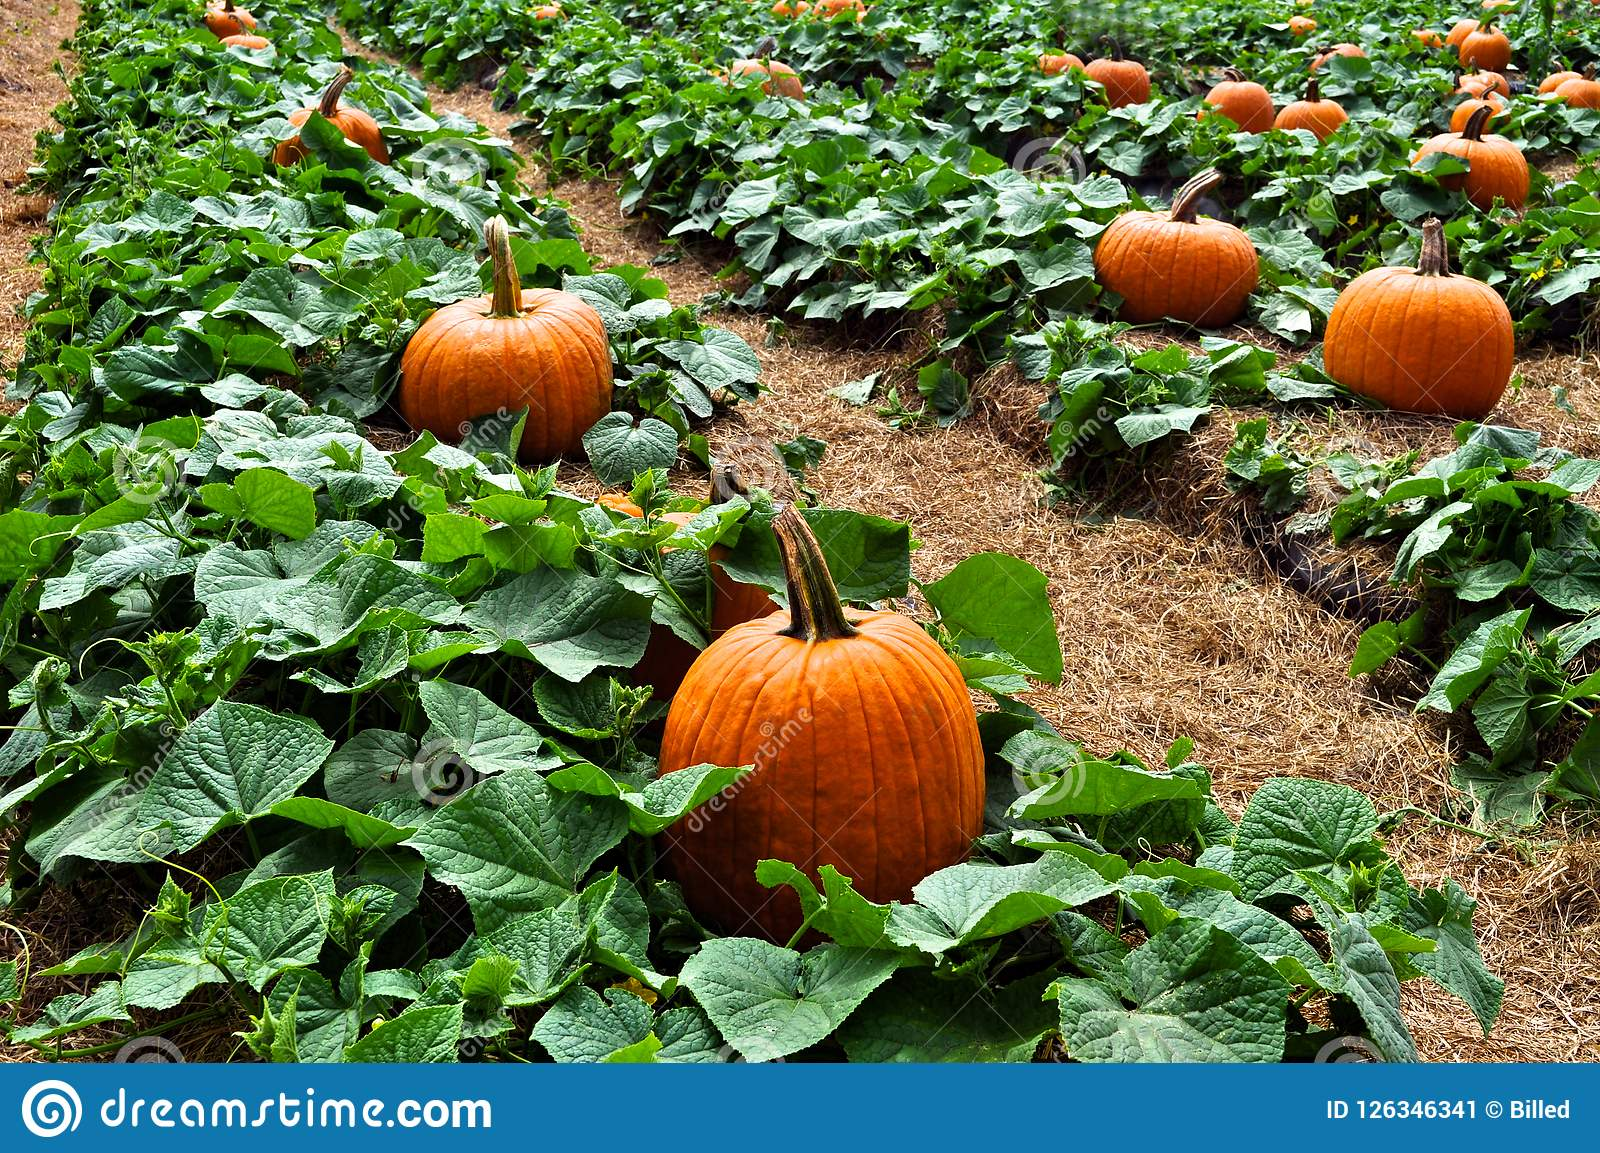 Pumpkin Patch Field With Lush Green Leaves Stock Image